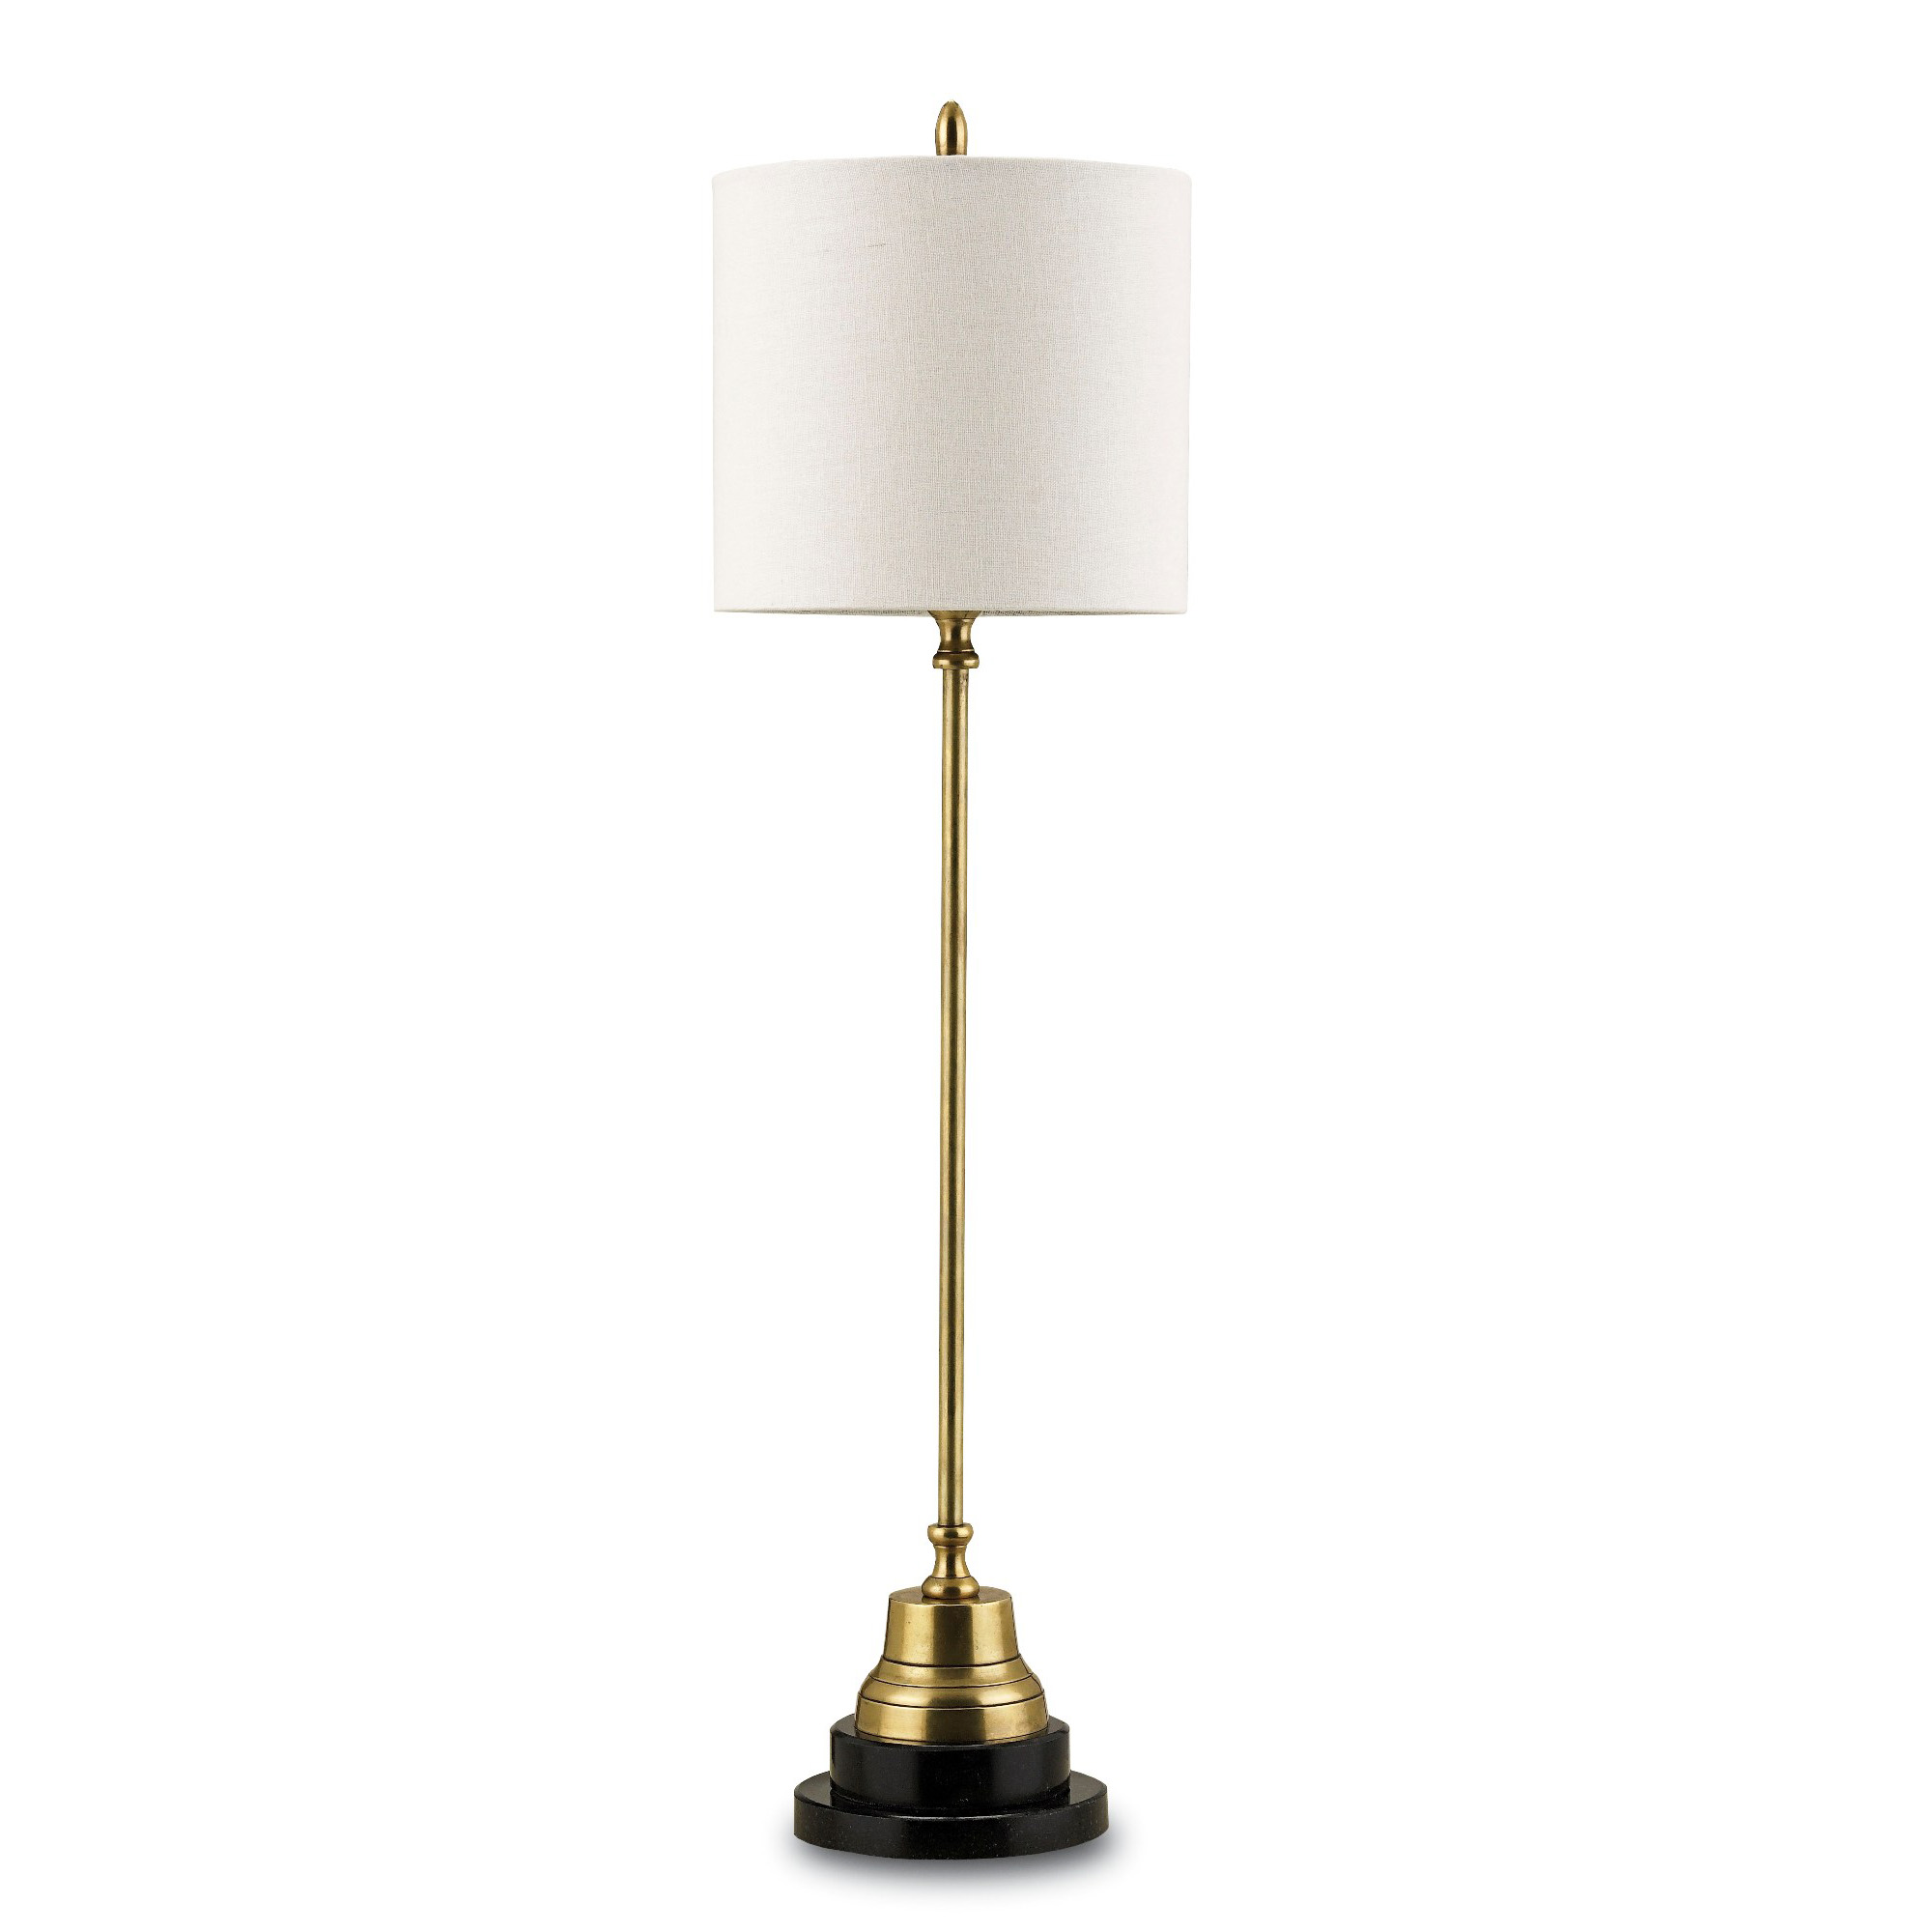 messenger table lamp by currey and company 6472 cc. Black Bedroom Furniture Sets. Home Design Ideas